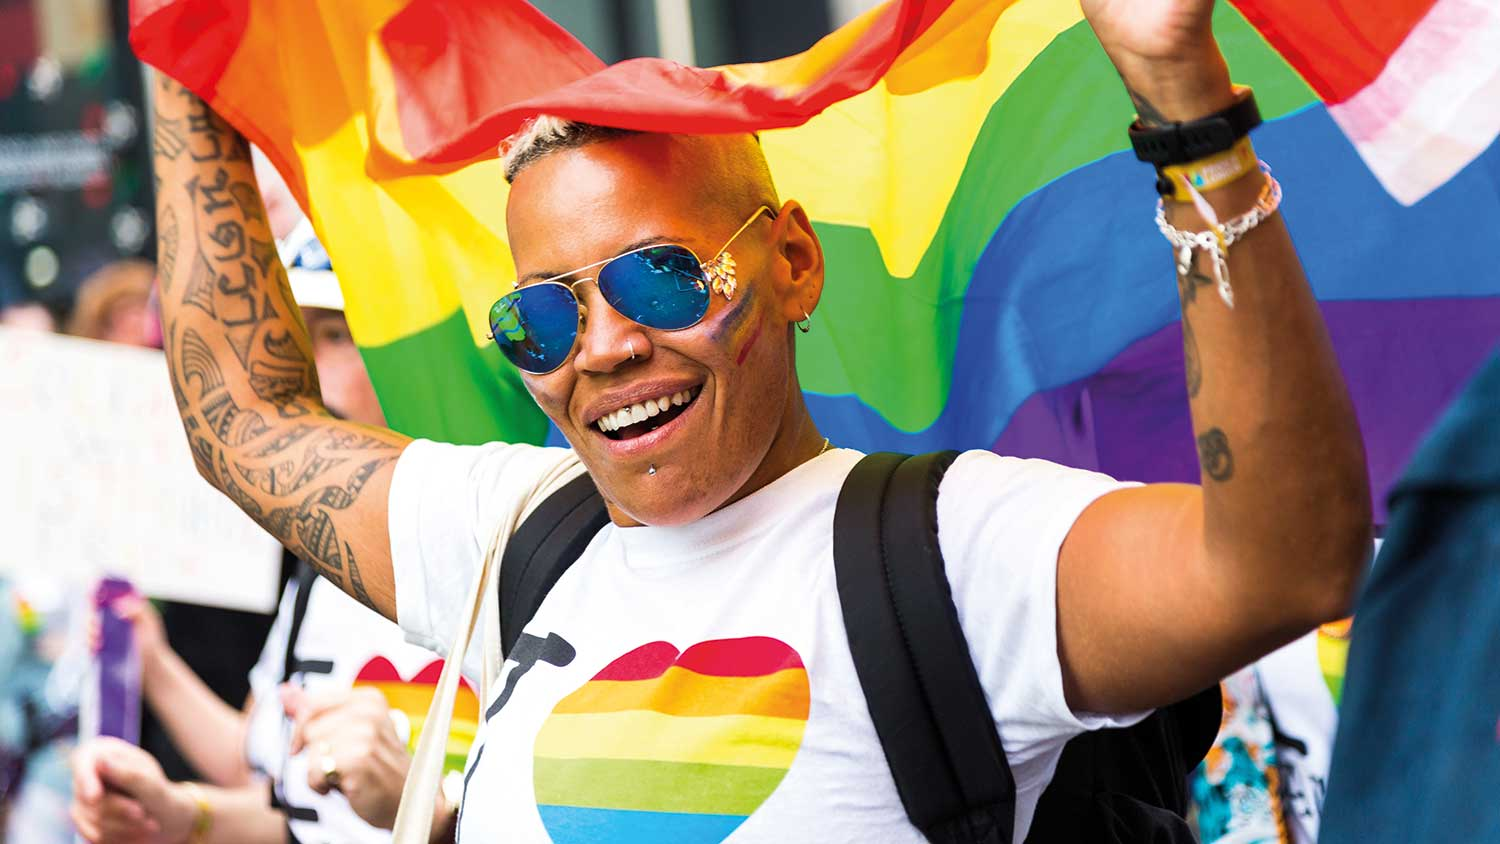 A person enjoying pride, holding a rainbow flag above their head and smiling to the camera